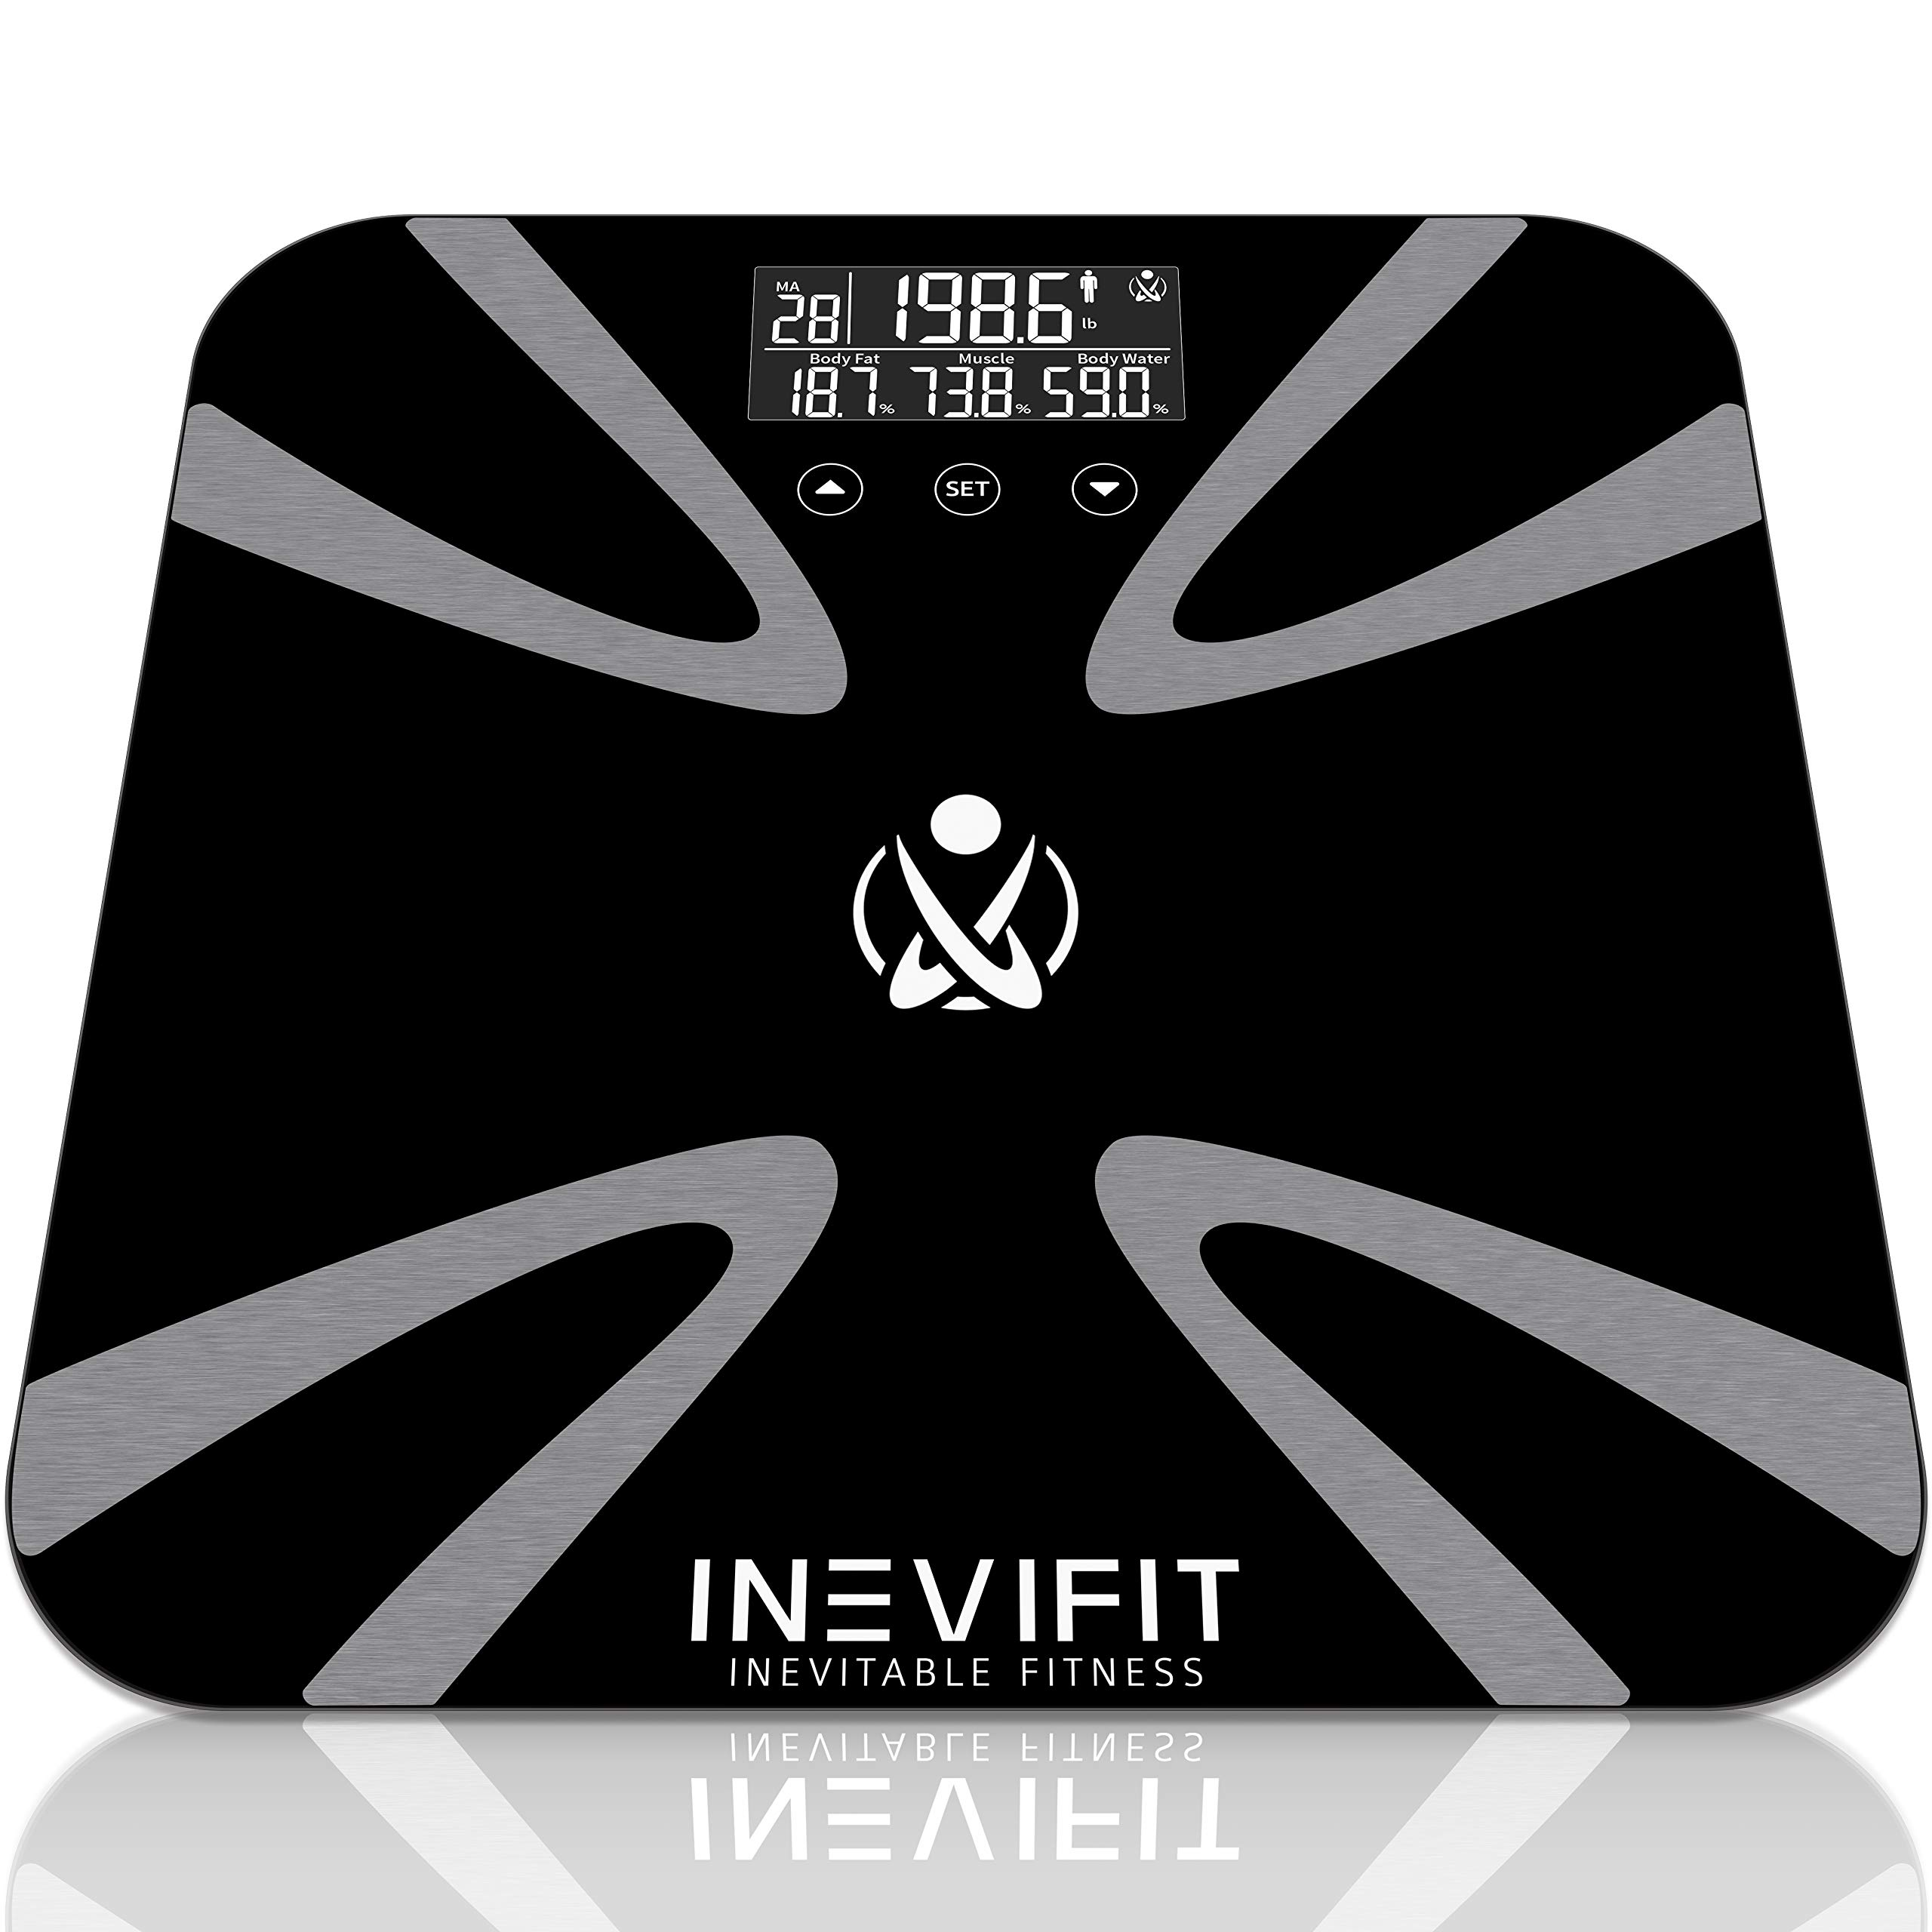 INEVIFIT Body Fat Scale, Highly Accurate Digital Bathroom Body Composition Analyzer, Measures Weight, Body Fat, Water, Muscle, BMI, Visceral Levels & Bone Mass for 10 Users. 5-Year Warranty by INEVIFIT